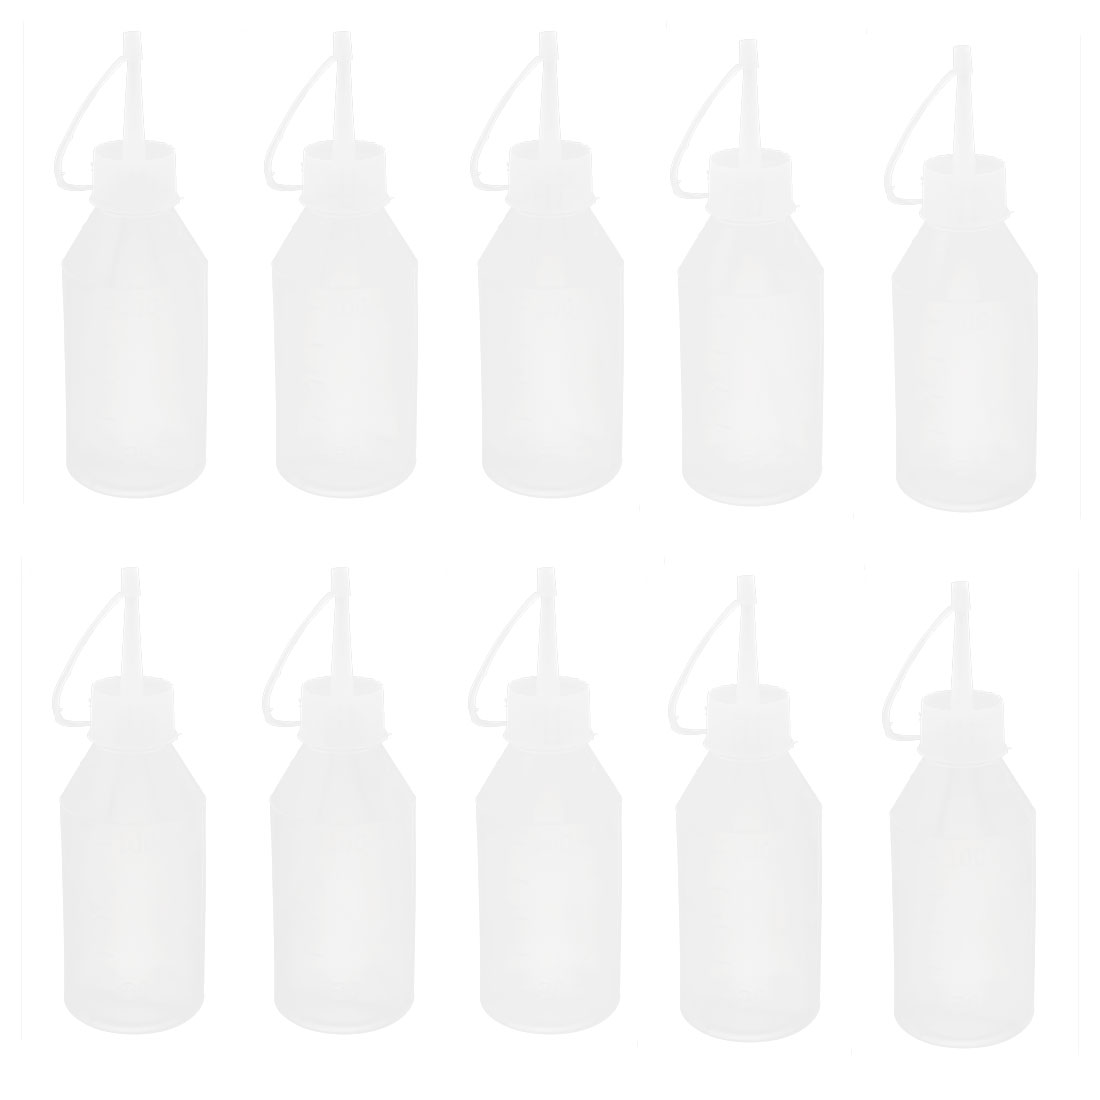 10pcs Plastic Oil Liquid Dispensing Squeeze Bottle 100ml Clear White